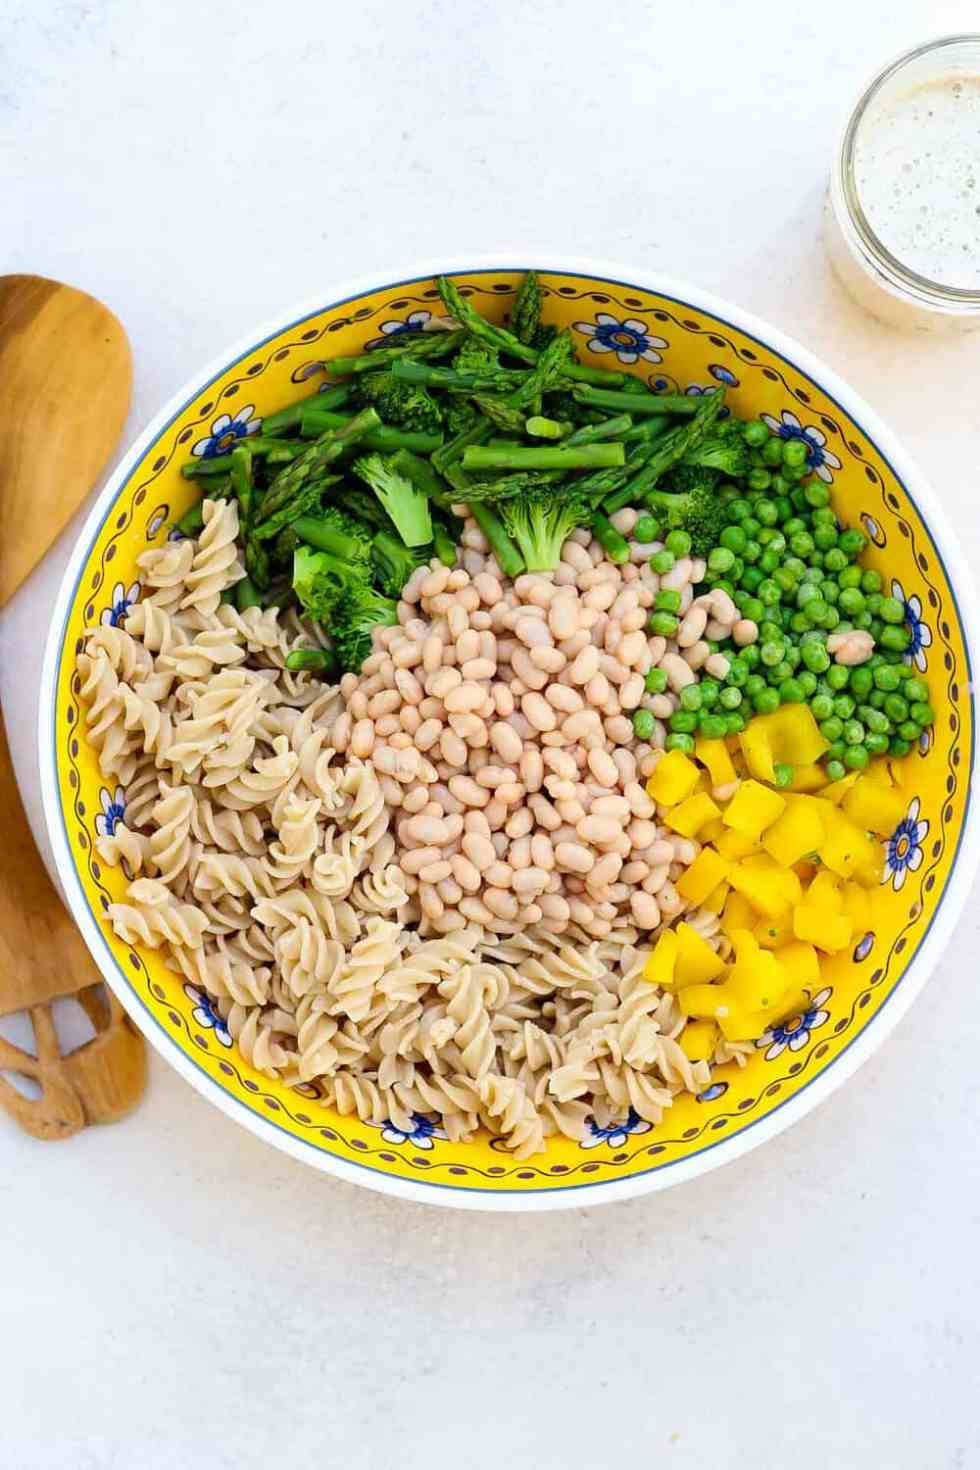 All of the ingredients for the pasta salad in a bowl getting ready to be mixed up.